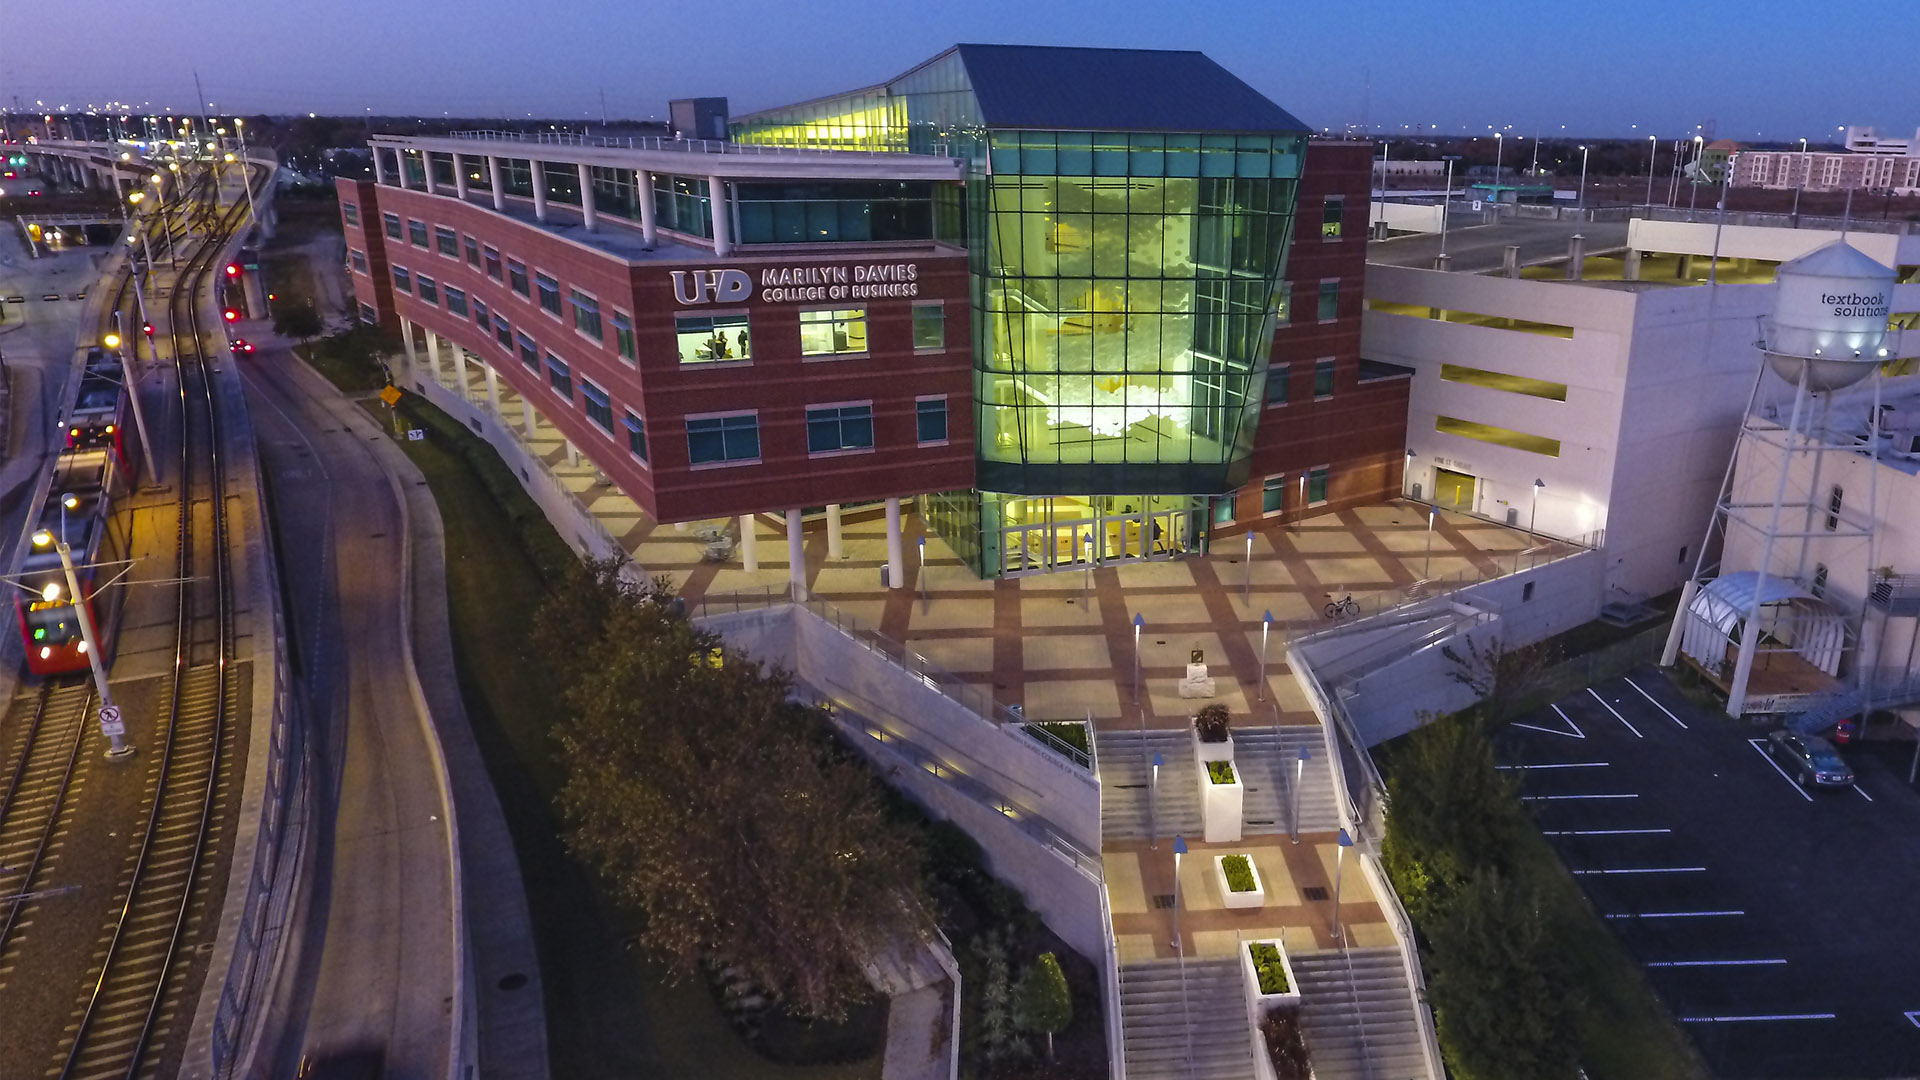 Night aerial view of the Marilyn Davies College of Business building